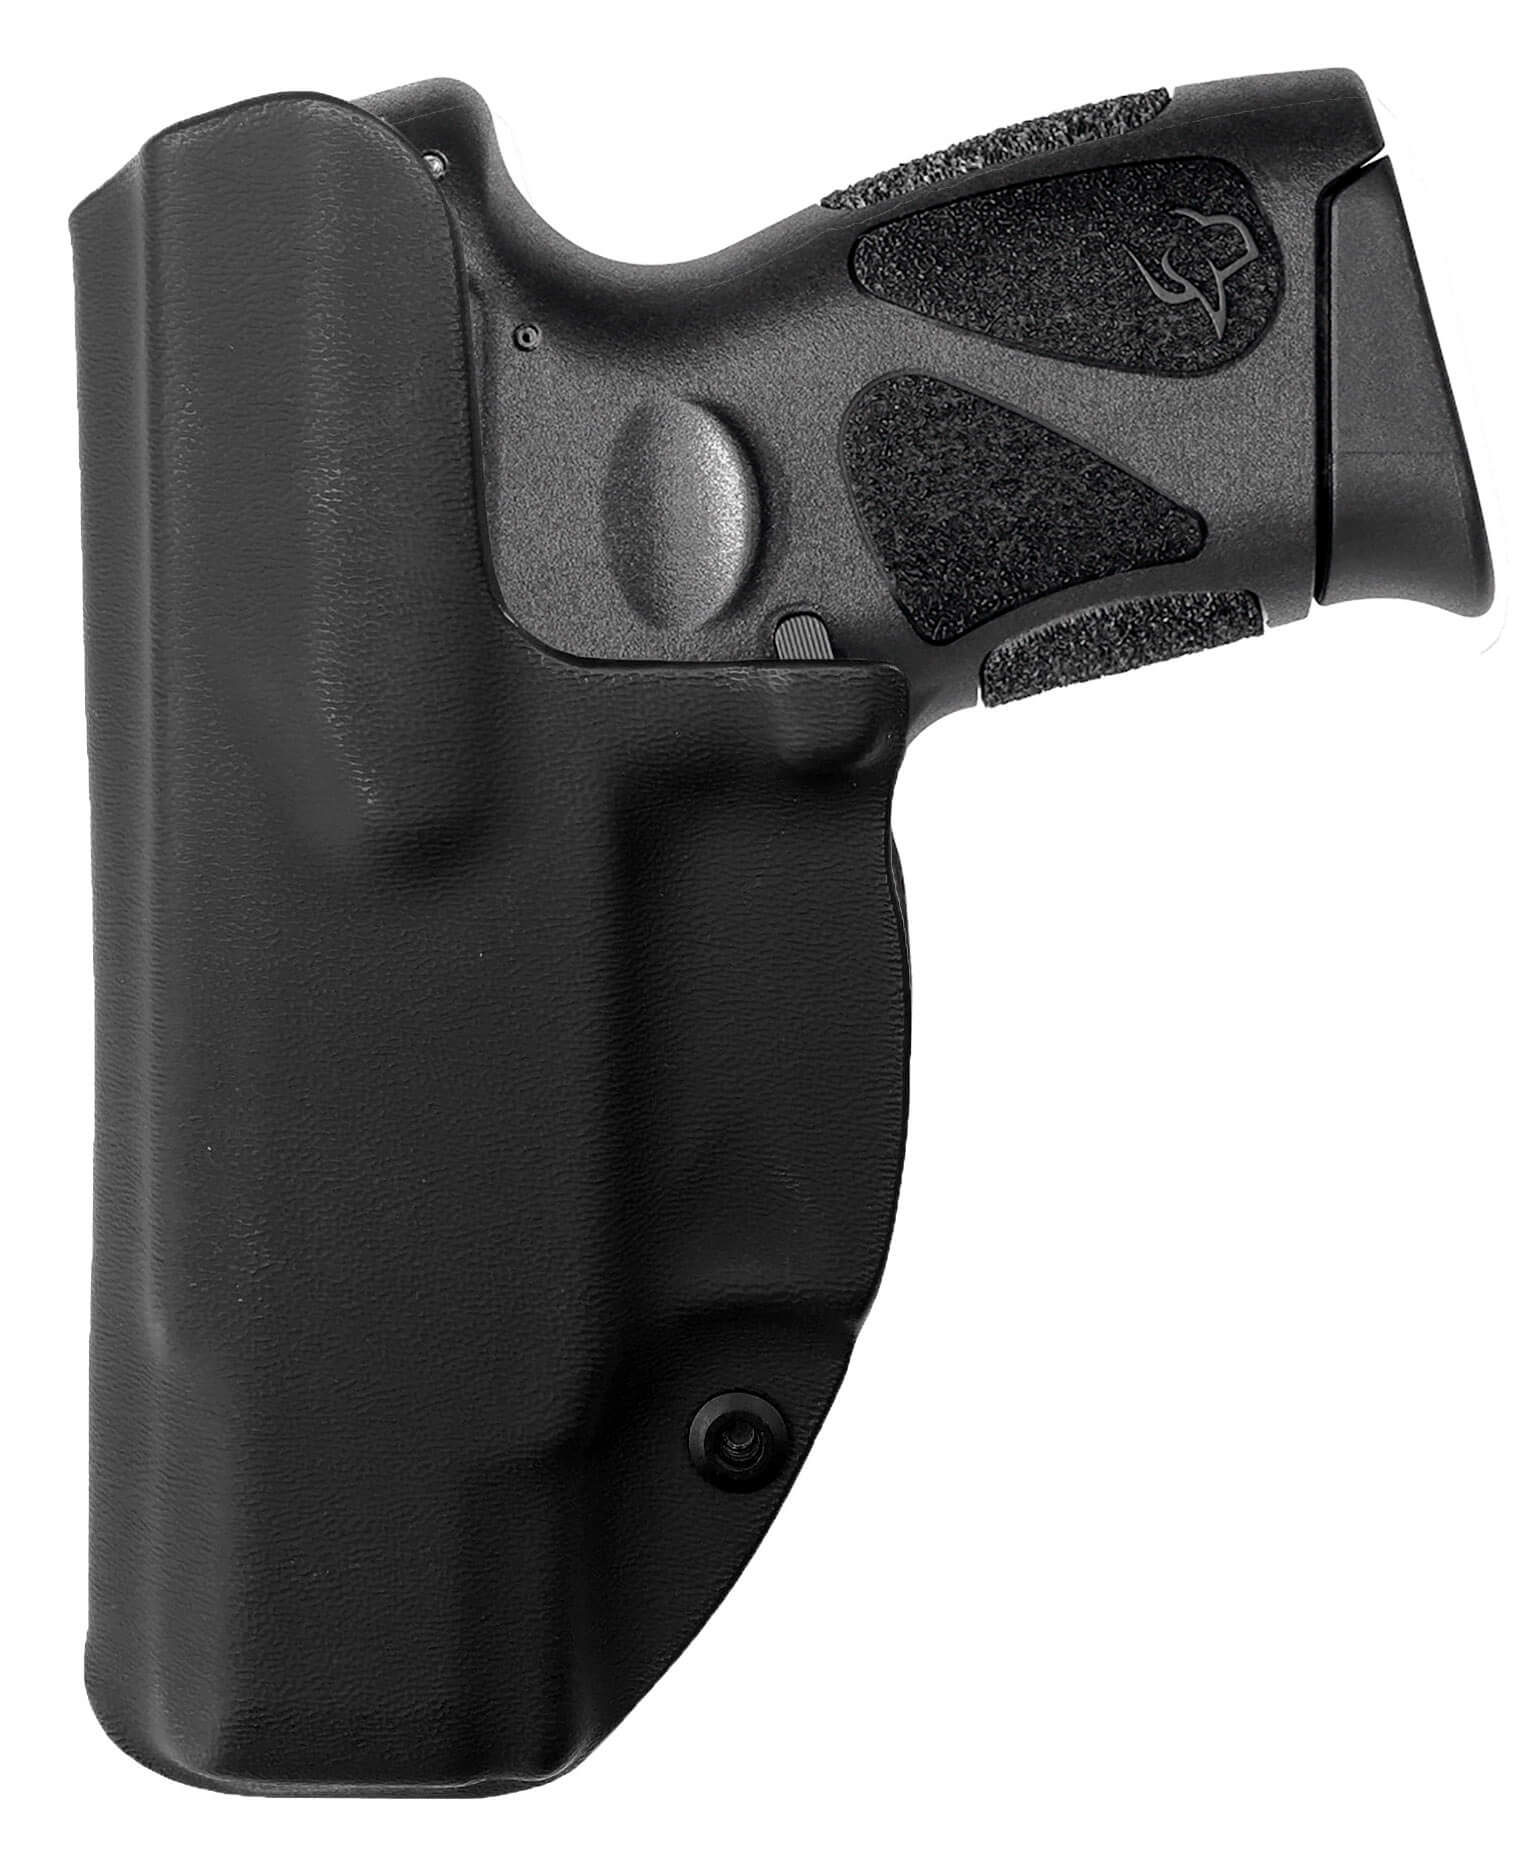 Coldre [G2c] 9mm e .40 - Com Flap Embutido - Velado Kydex® 080